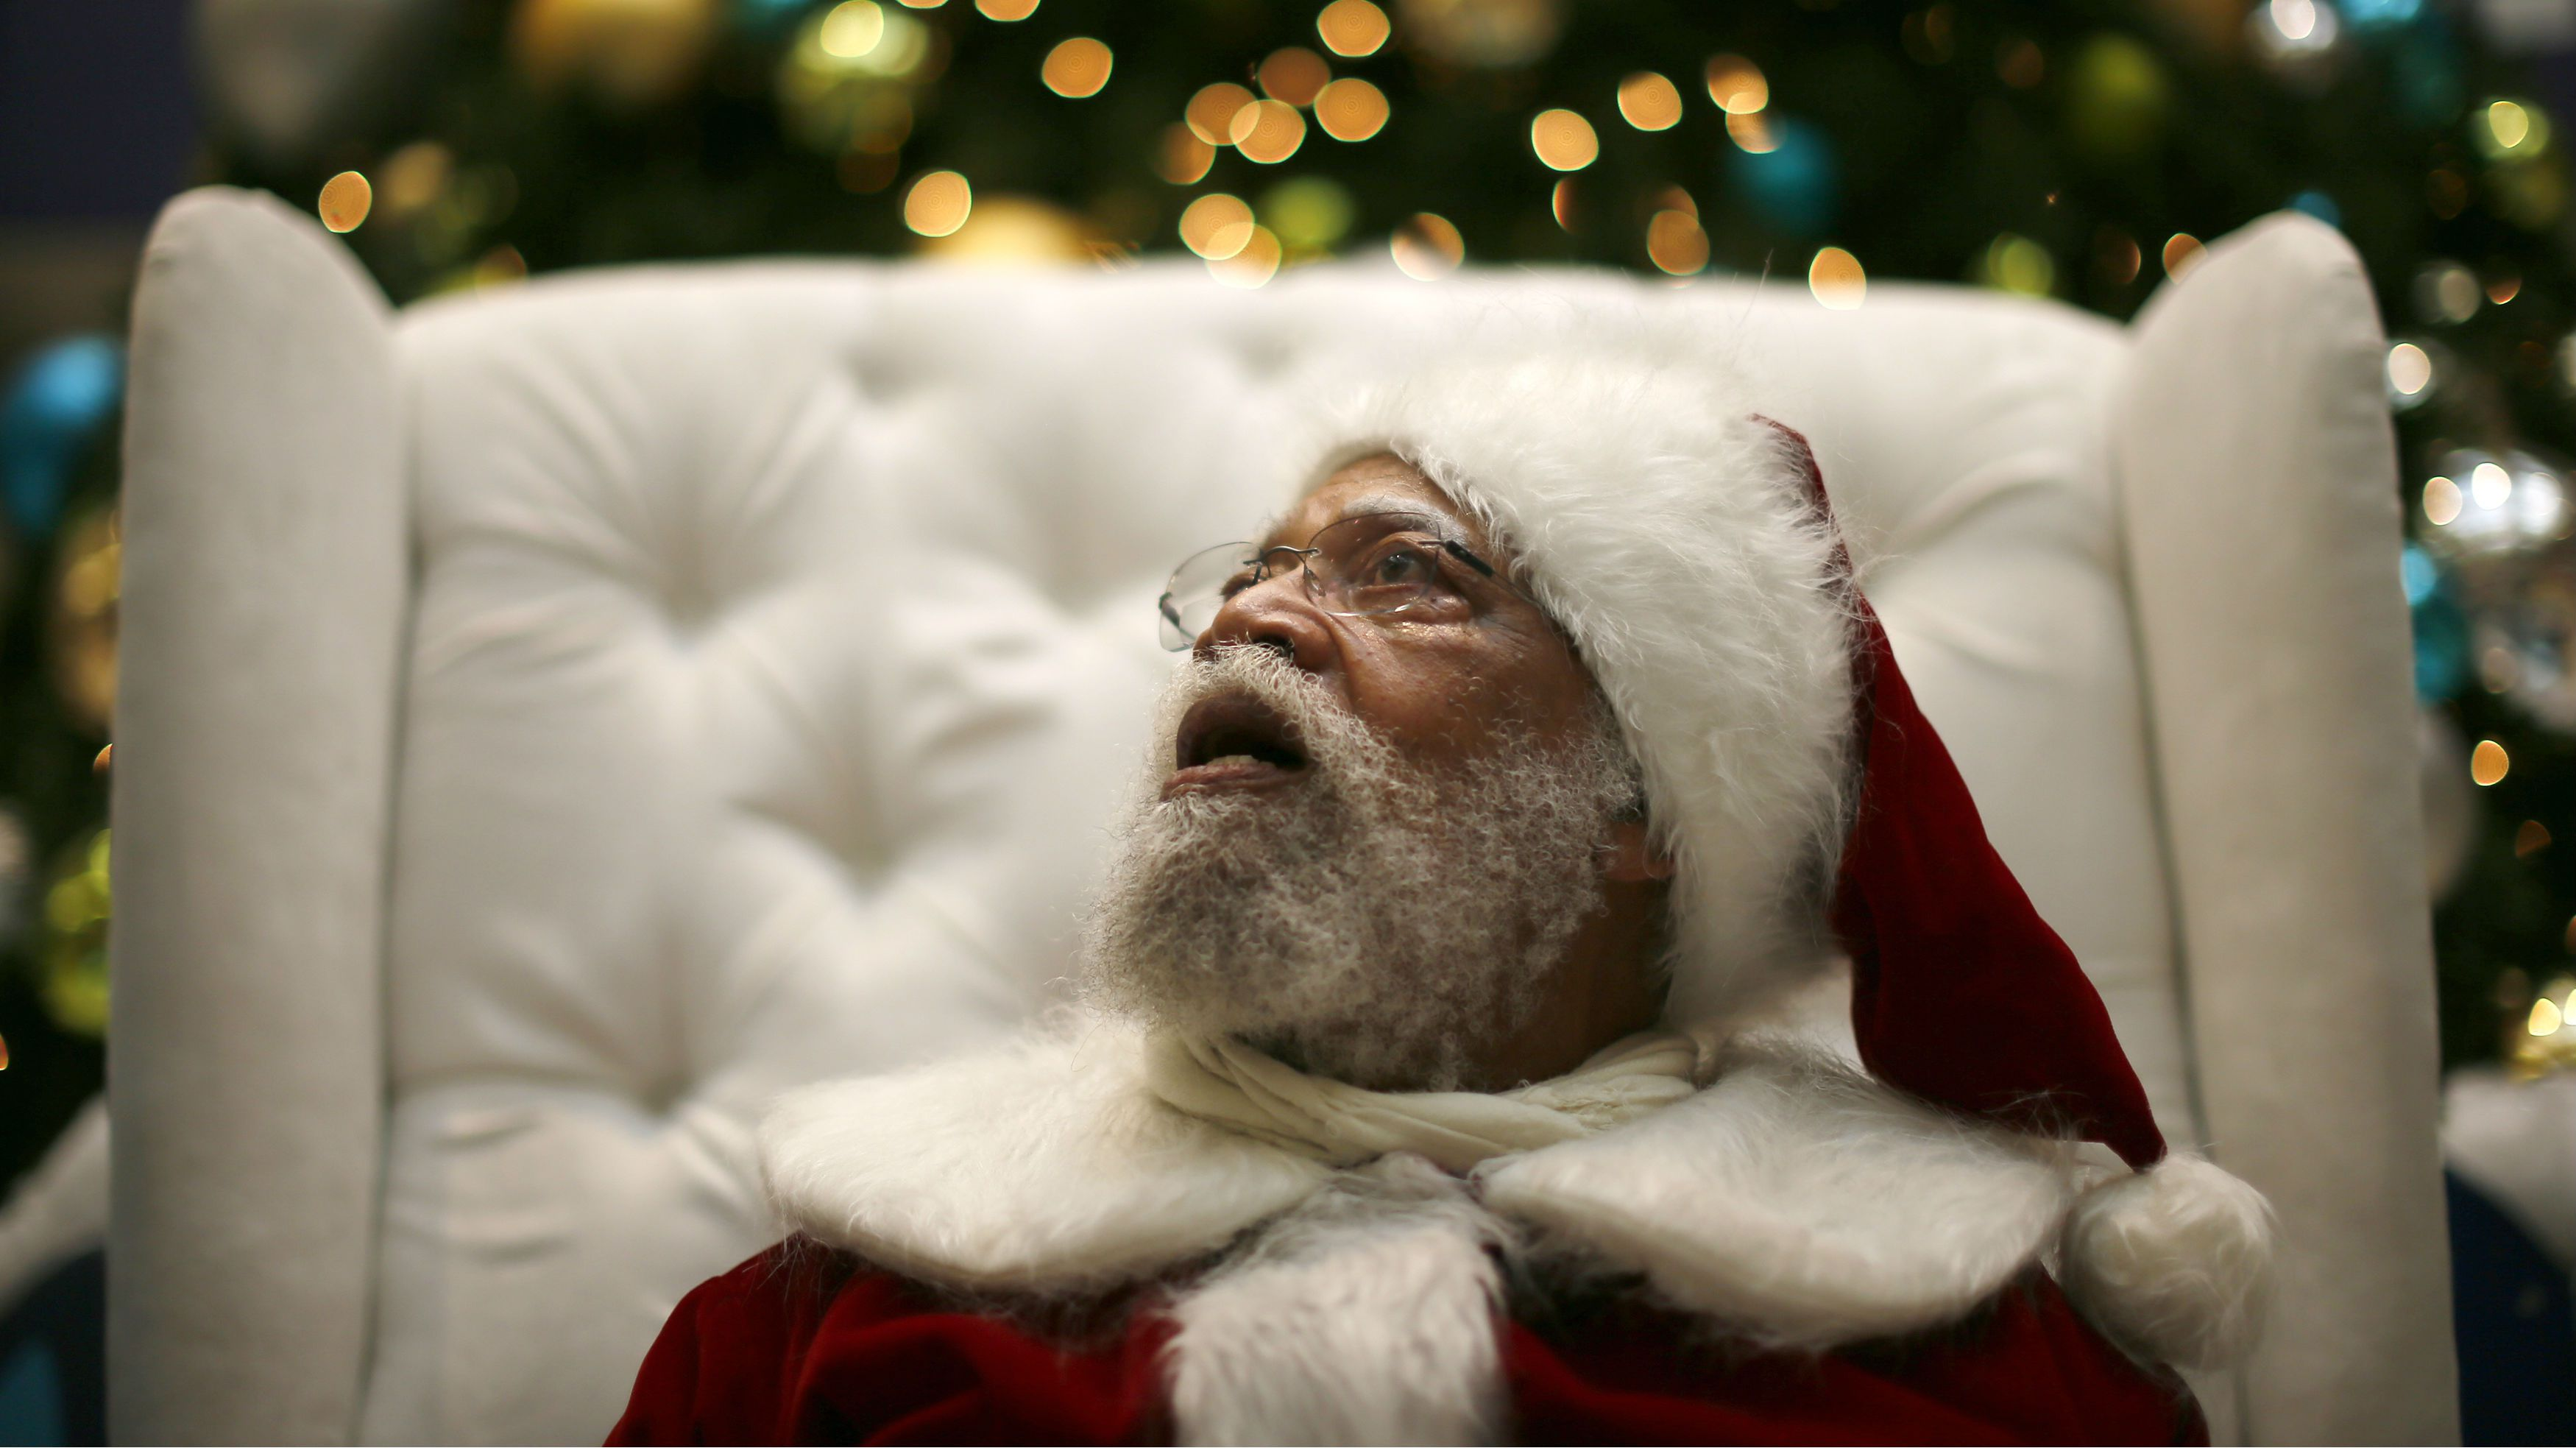 African American Santa Claus Langston Patterson, 77, waits for children to arrive at Baldwin Hills Crenshaw Plaza mall in Los Angeles, California, December 16, 2013. Patterson has worked as Santa since 2004 at the mall, which is one of the few in the country with a black Santa Claus. A New Mexico teacher who told an African American student that Santa Claus was white has been put on paid administrative leave, an official said on Monday. REUTERS/Lucy Nicholson